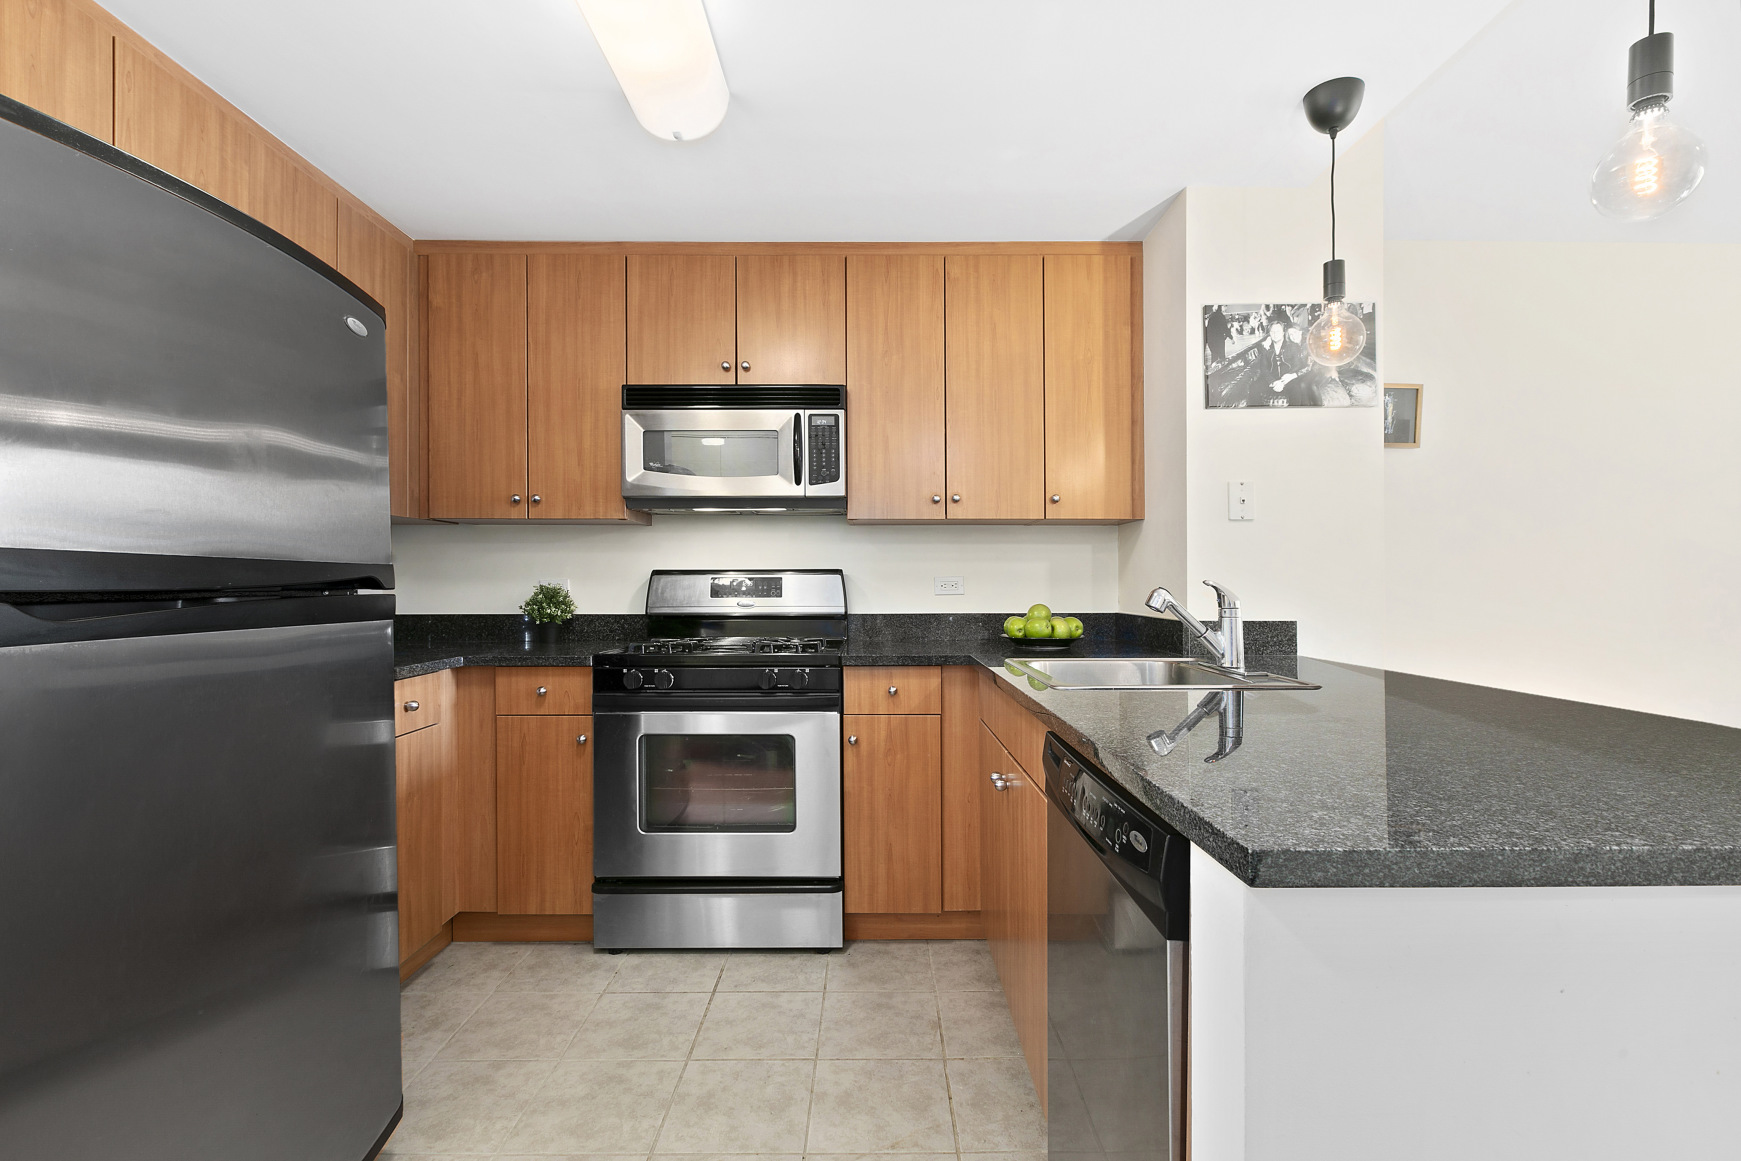 Apartment for sale at 455 Main Street, Apt 3-H